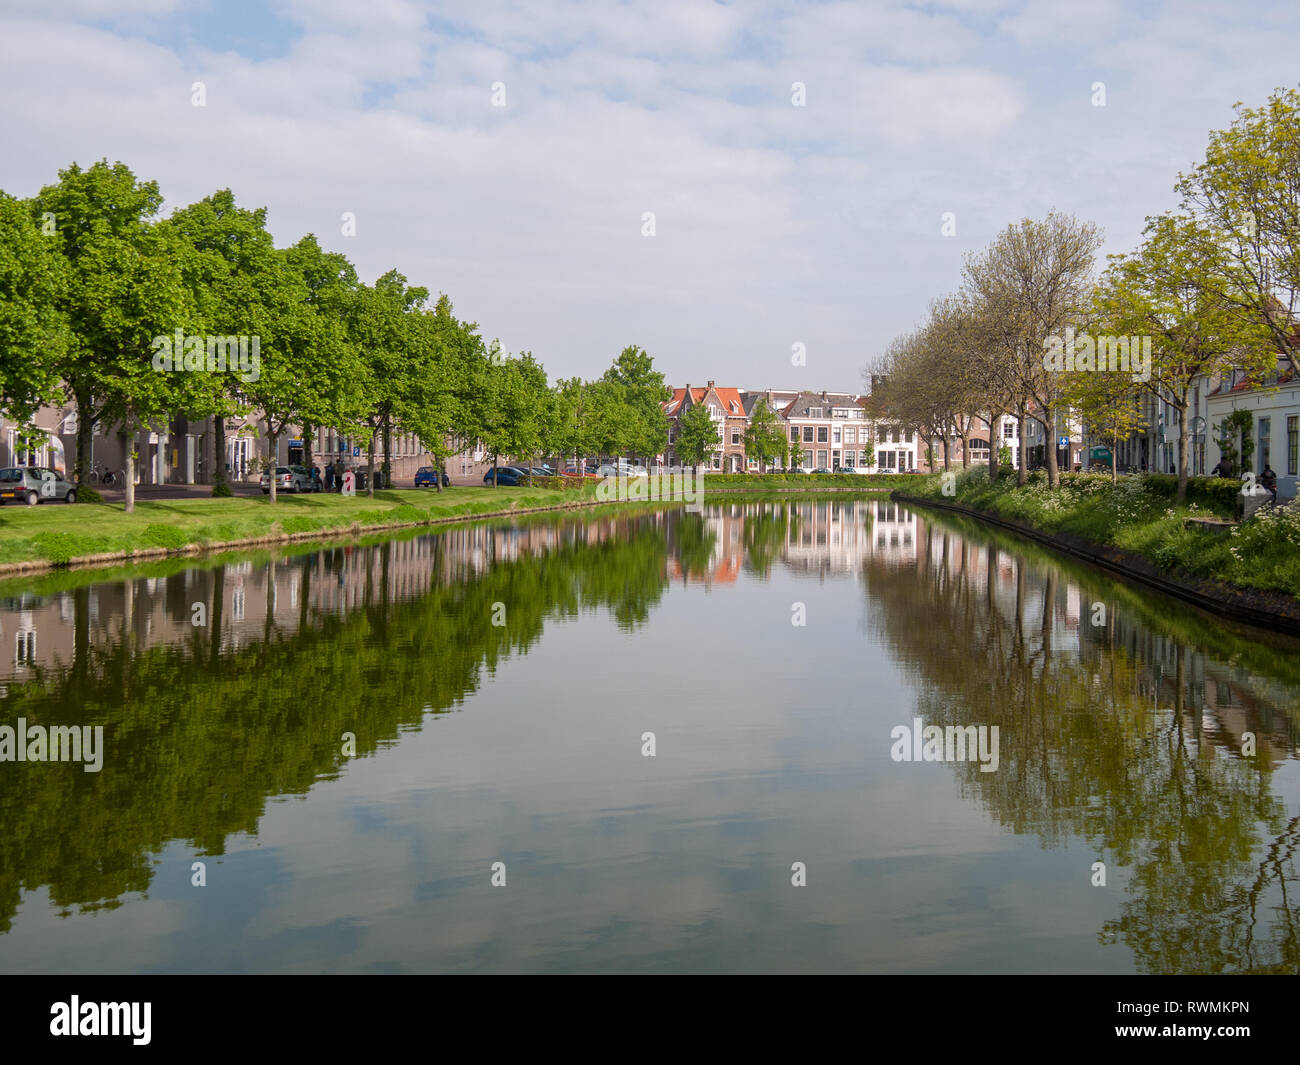 calm canal through Middelburg with trees and hedges on the sides on the island Walcheren, Zeeland, Netherlands Stock Photo